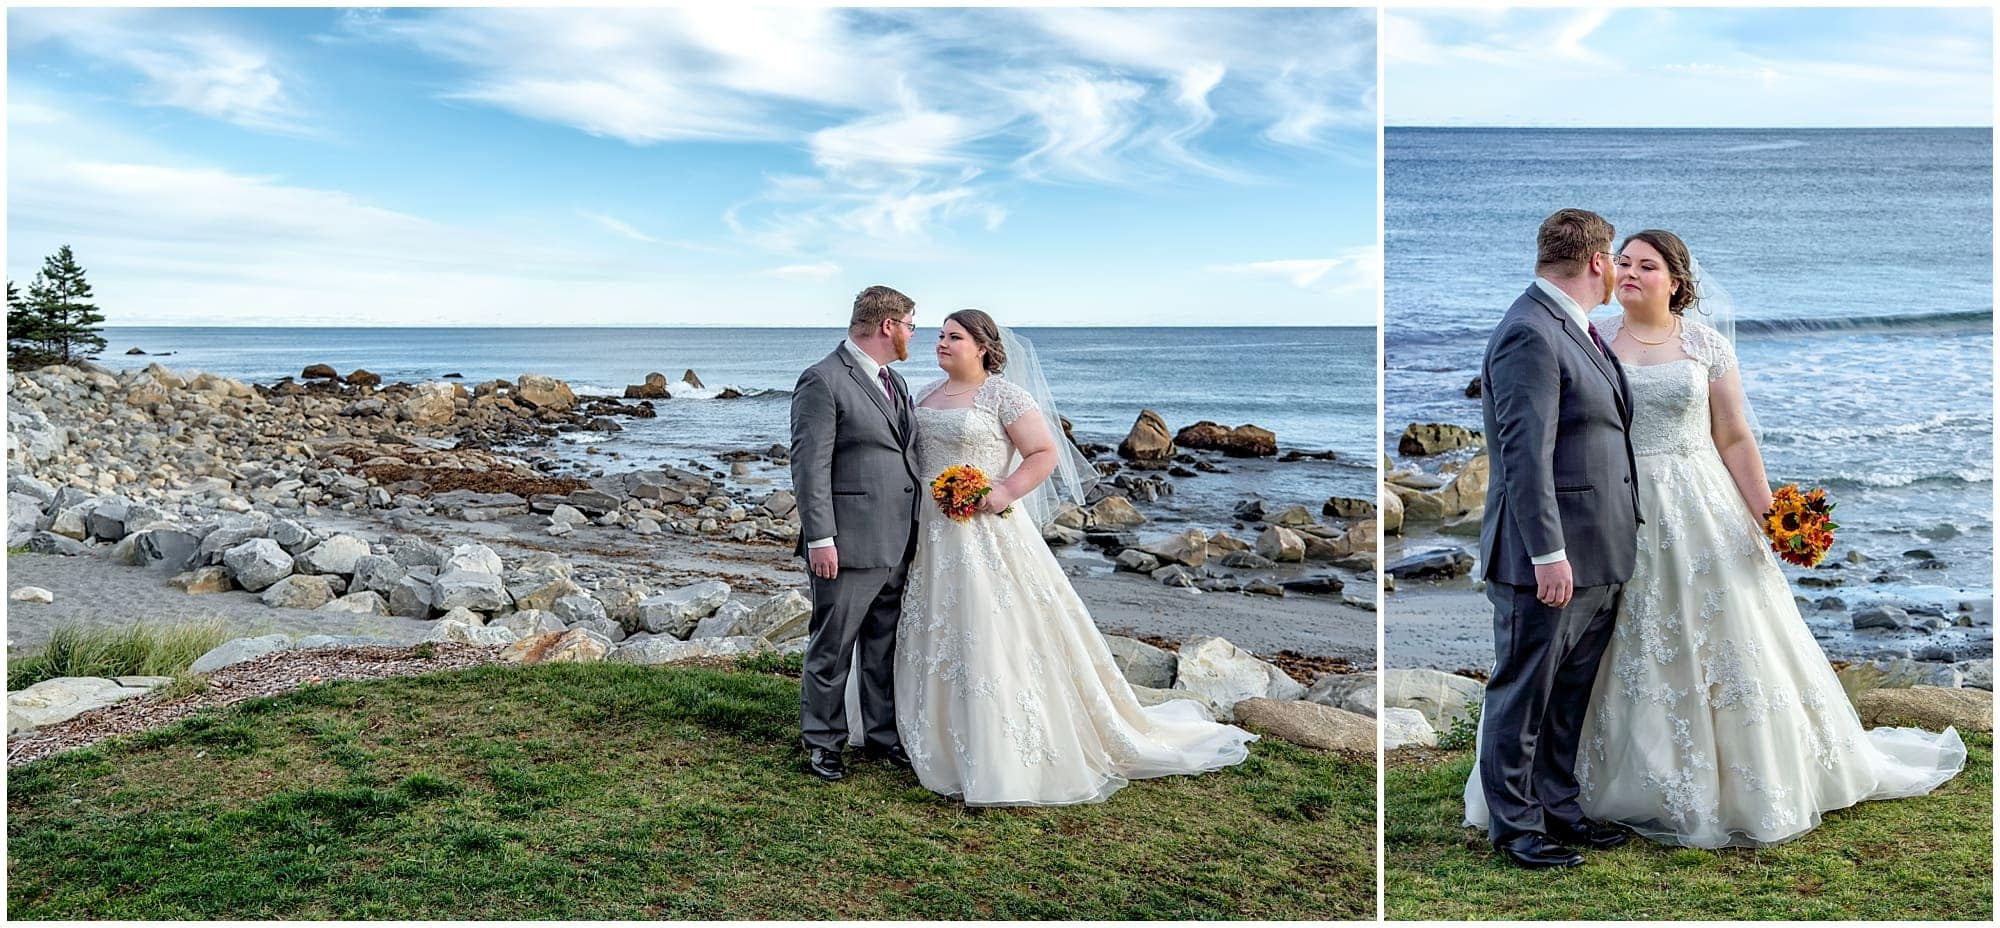 The bride and groom pose for wedding photos on the ocean at White Point.